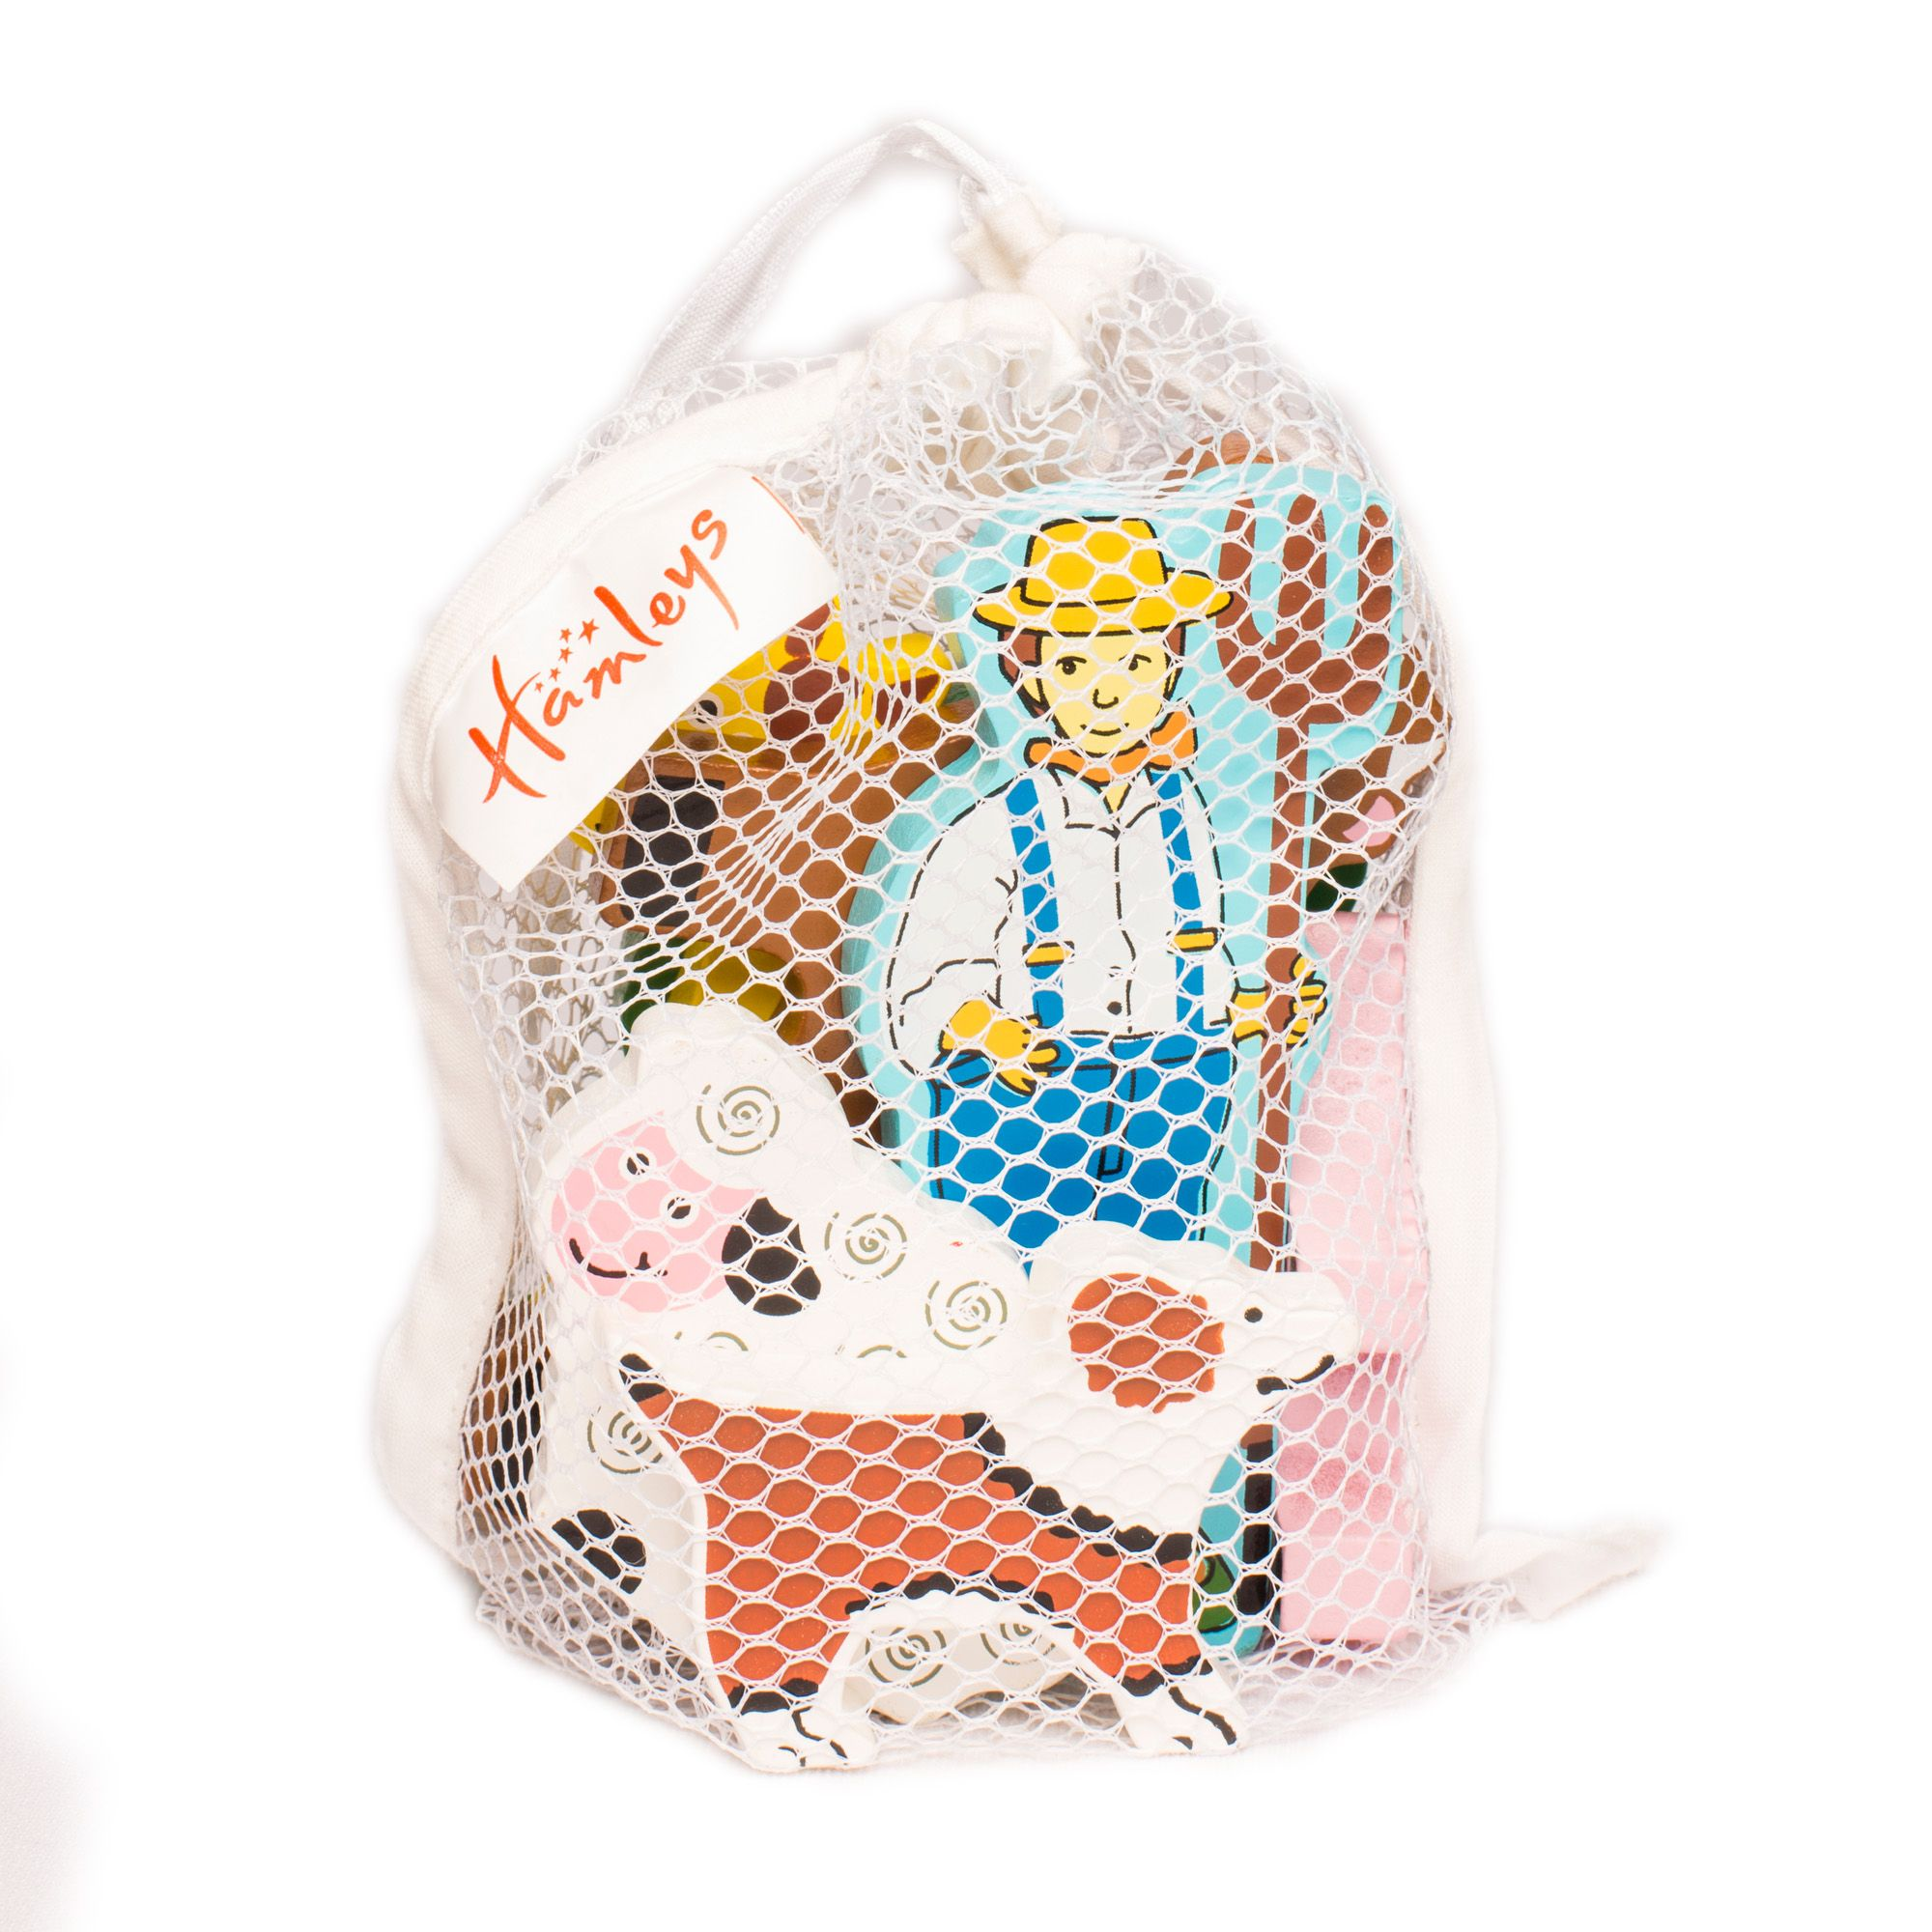 Hamleys Mini Farm Animals Bag